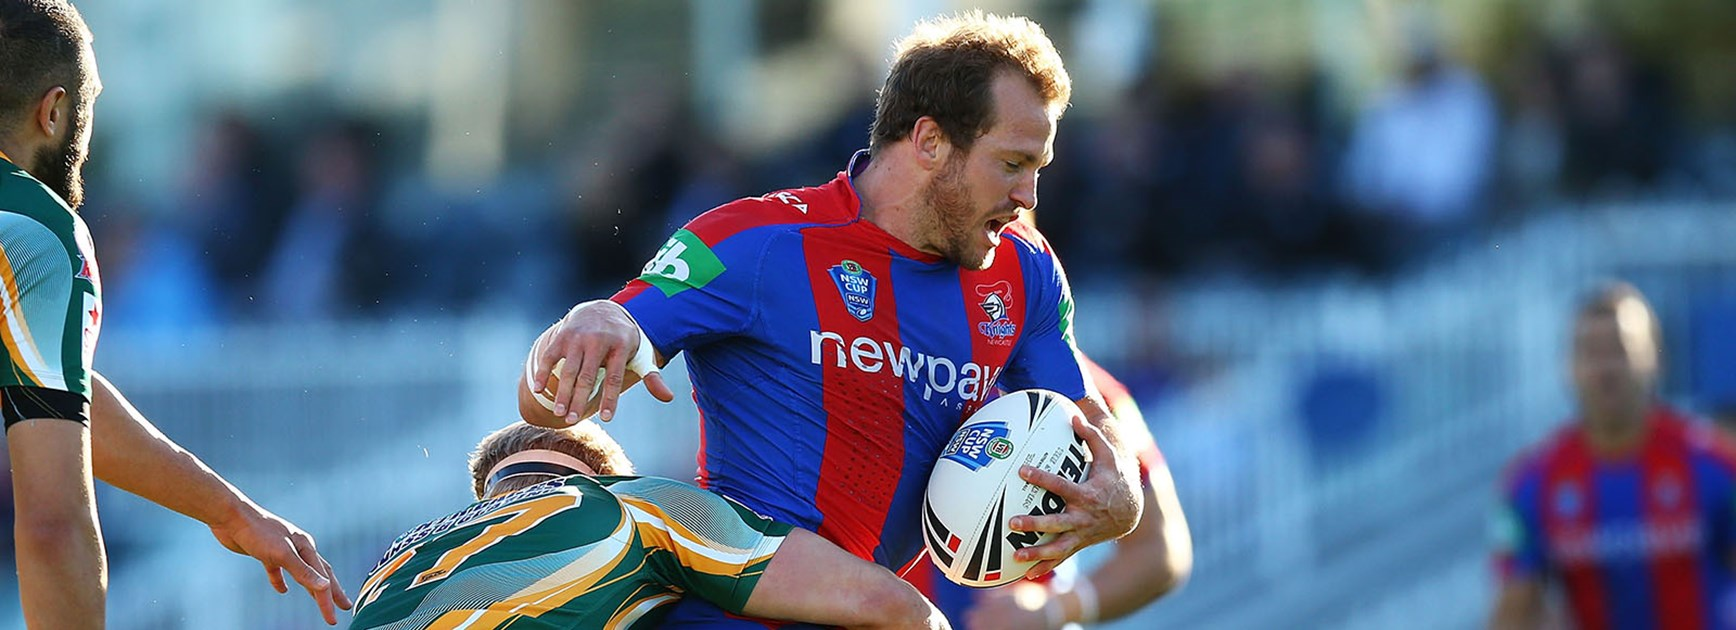 Clint Newton led his Newcastle Knights to NSW Cup Grand Final success.